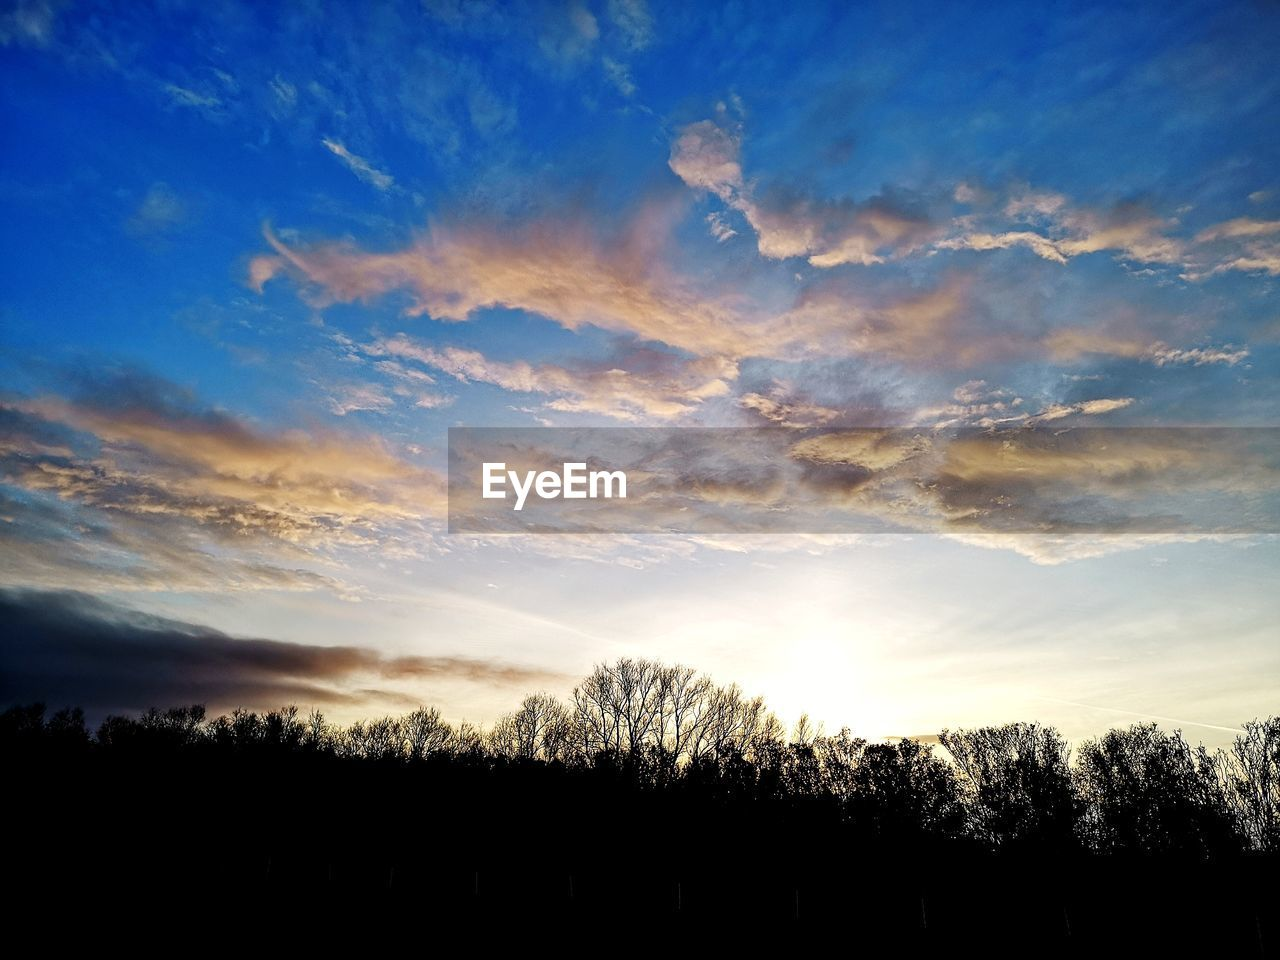 sky, cloud - sky, tranquility, tranquil scene, beauty in nature, scenics - nature, tree, sunset, silhouette, plant, no people, environment, landscape, nature, non-urban scene, land, idyllic, outdoors, field, sunlight